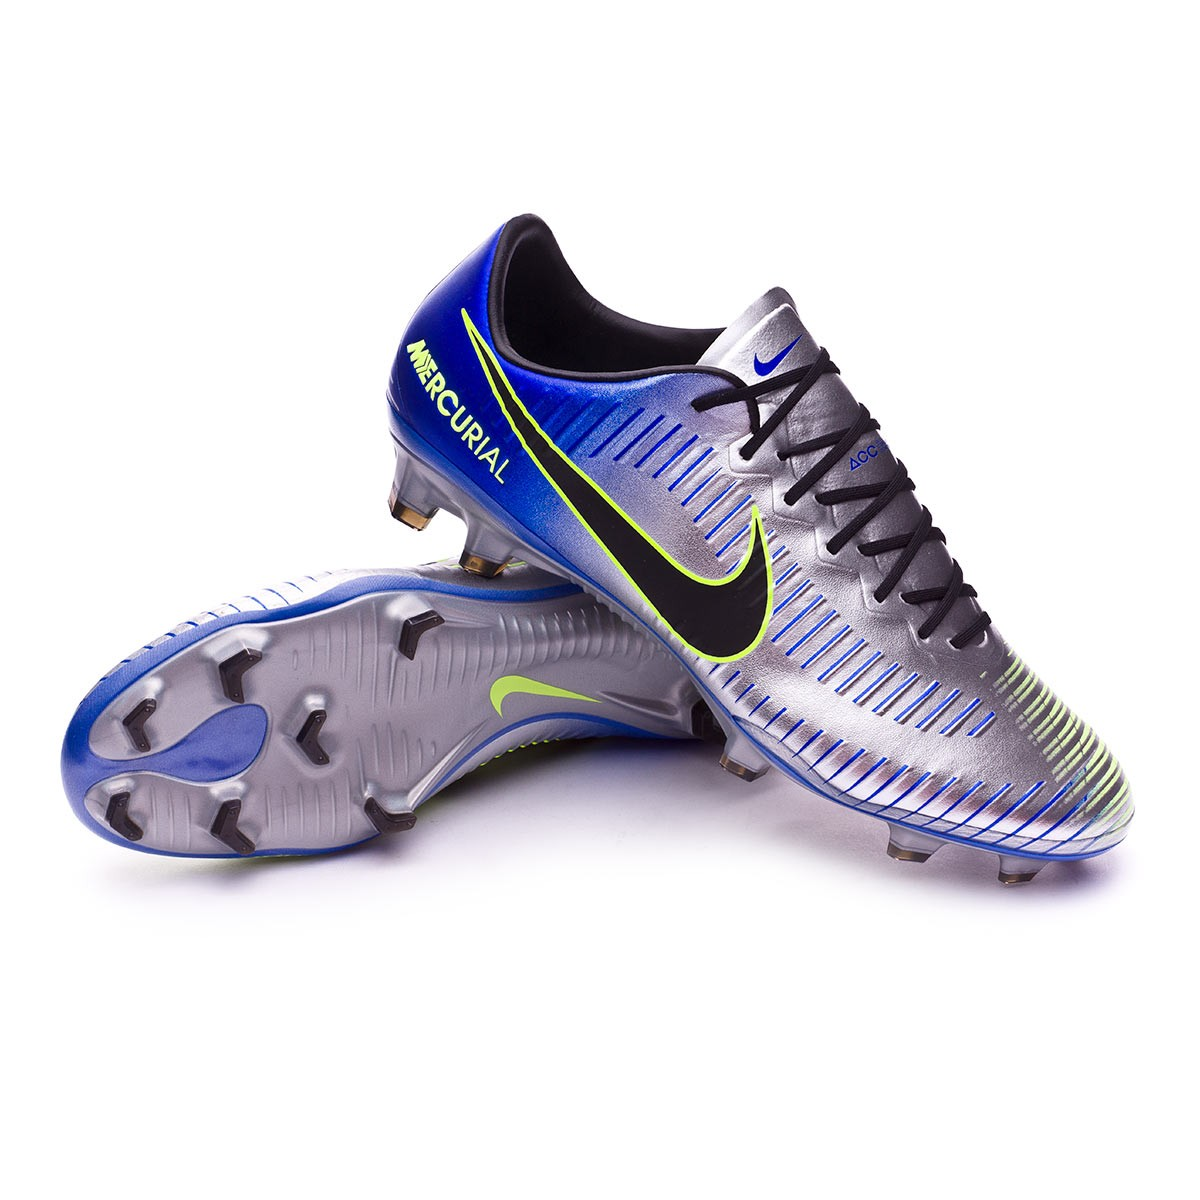 ángel Onza Biblia  Football Boots Nike Mercurial Vapor XI FG Neymar Racer  blue-Black-Chrome-Volt - Football store Fútbol Emotion